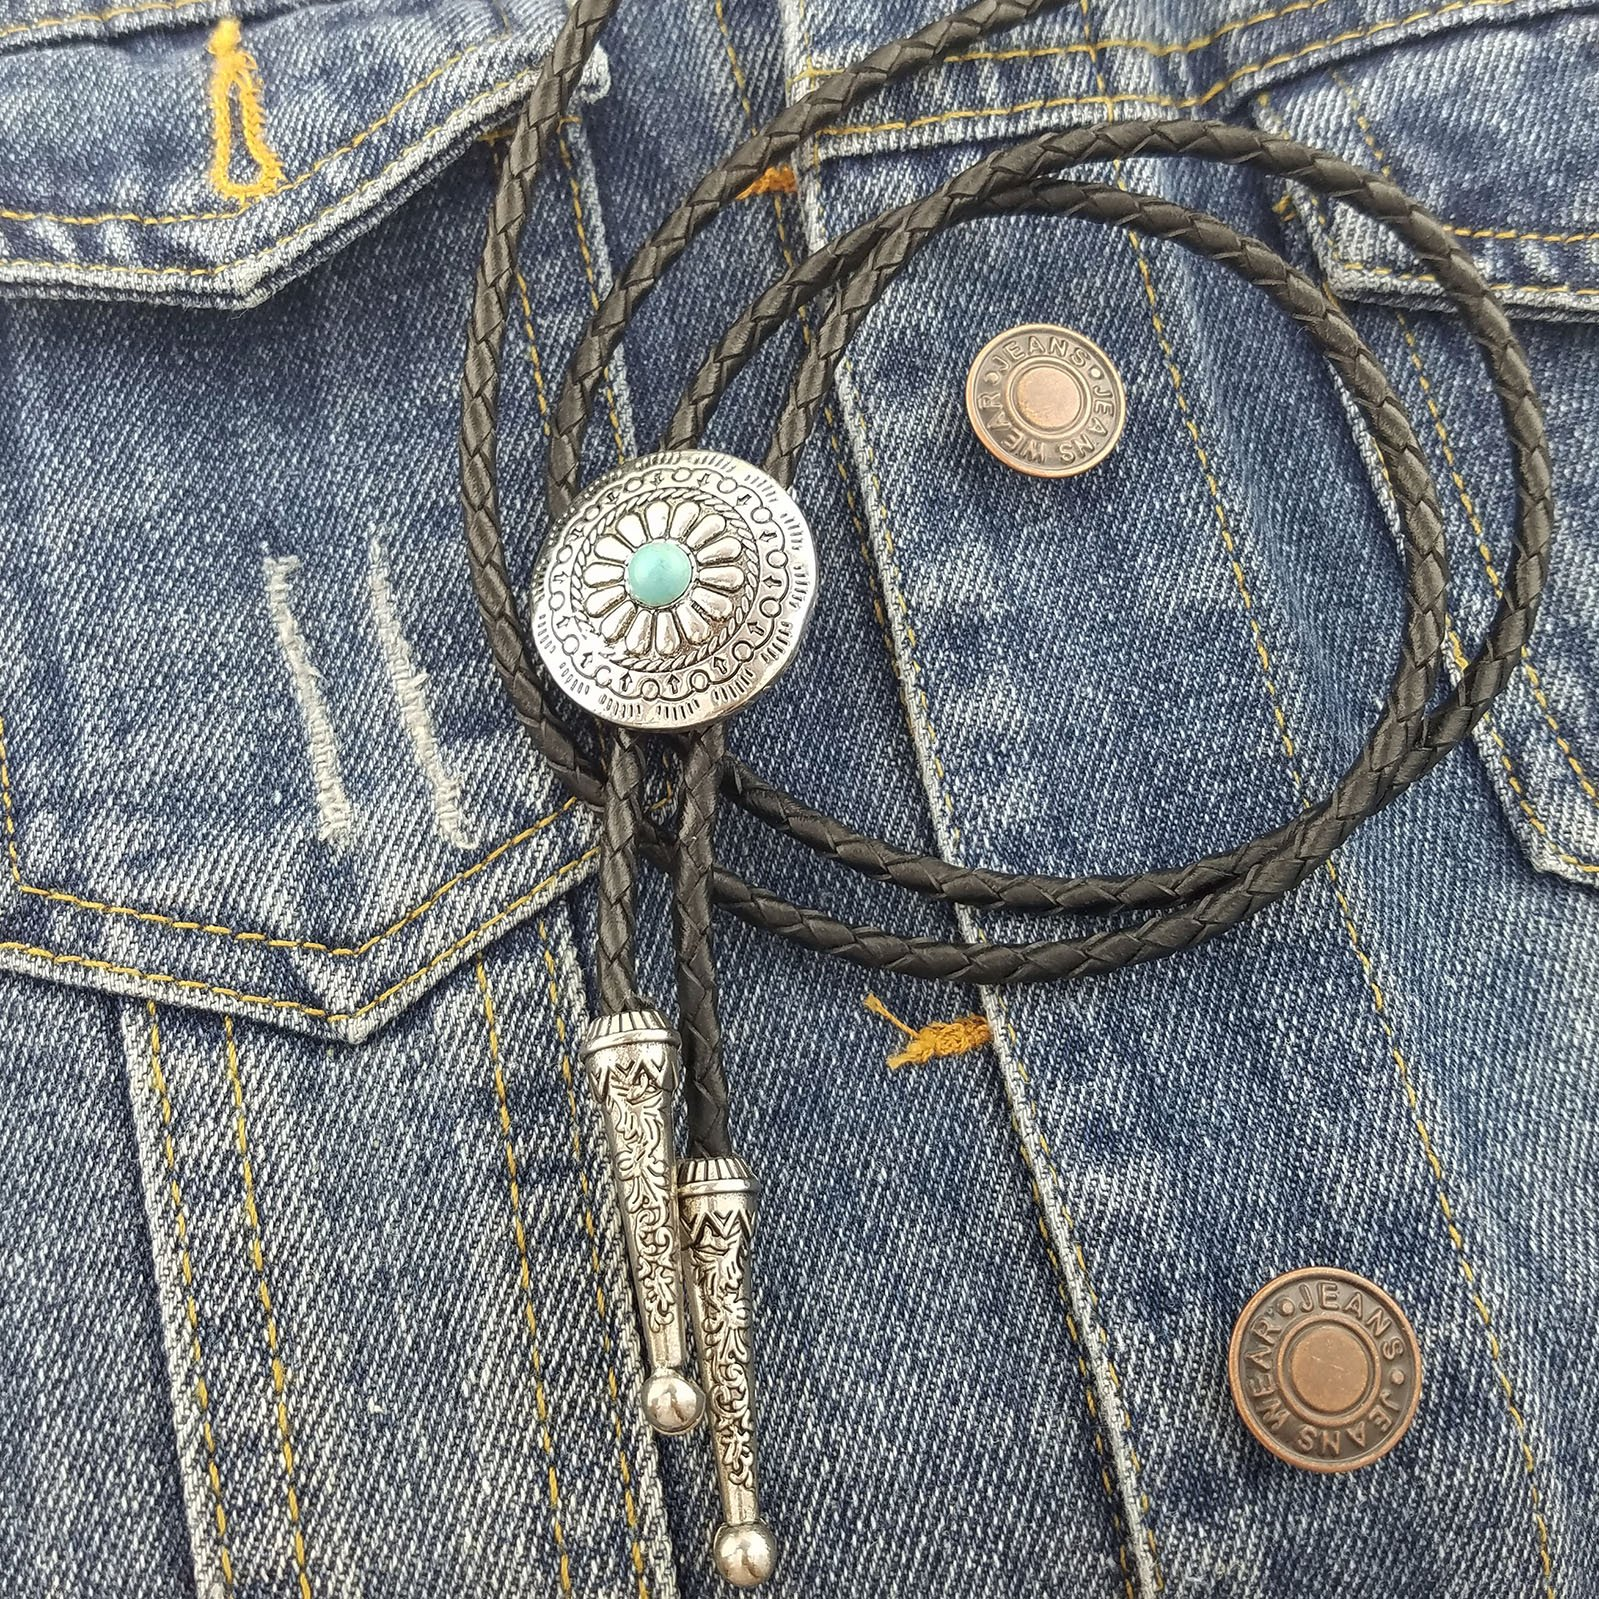 SELOVO Genuine Leather Native American Celtic Coin Bolo Tie Turquise Stone by SELOVO (Image #2)